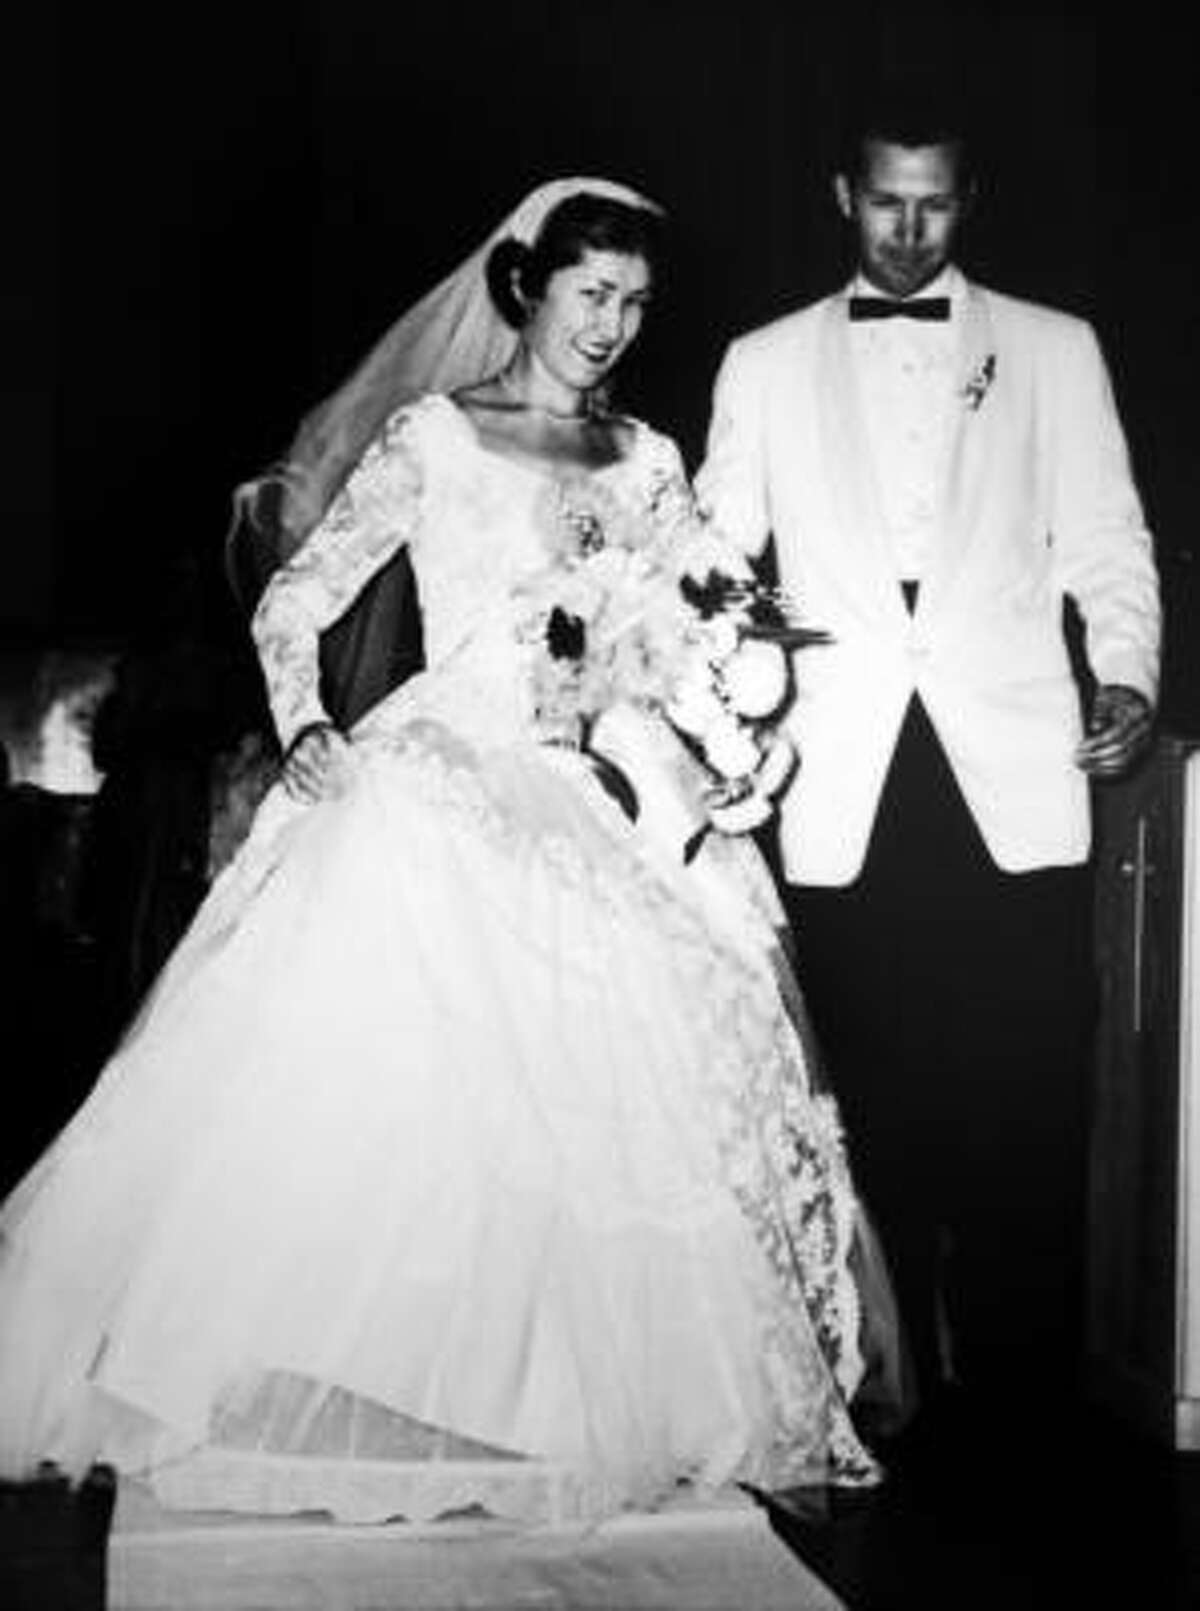 John and Dodie Osteen on their wedding day in 1954. The couple had six children, all of whom are involved with ministry.